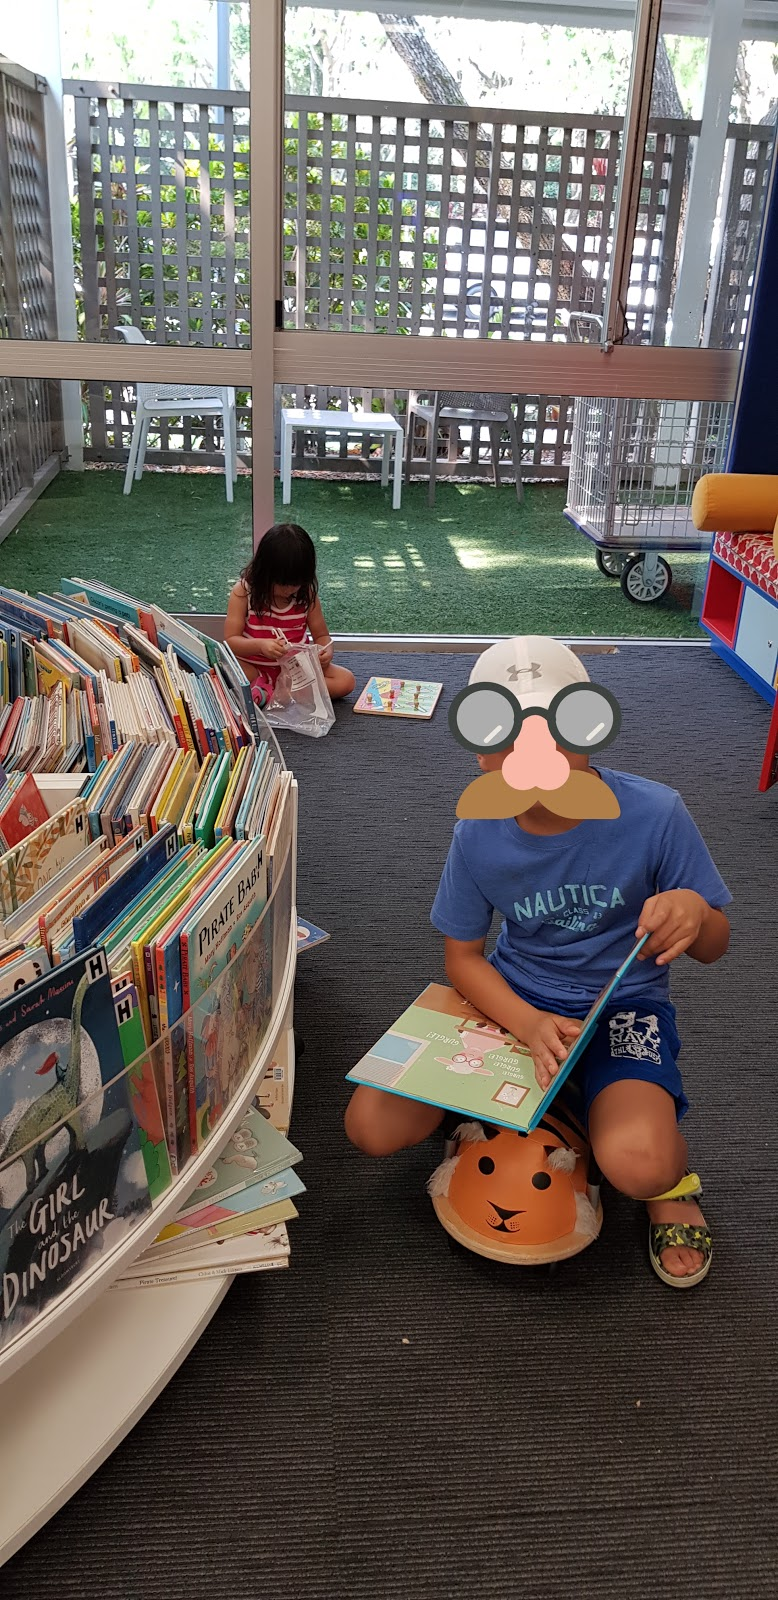 Caloundra Library - Sunshine Coast Libraries | library | 8 Omrah Ave, Caloundra QLD 4551, Australia | 0754758989 OR +61 7 5475 8989